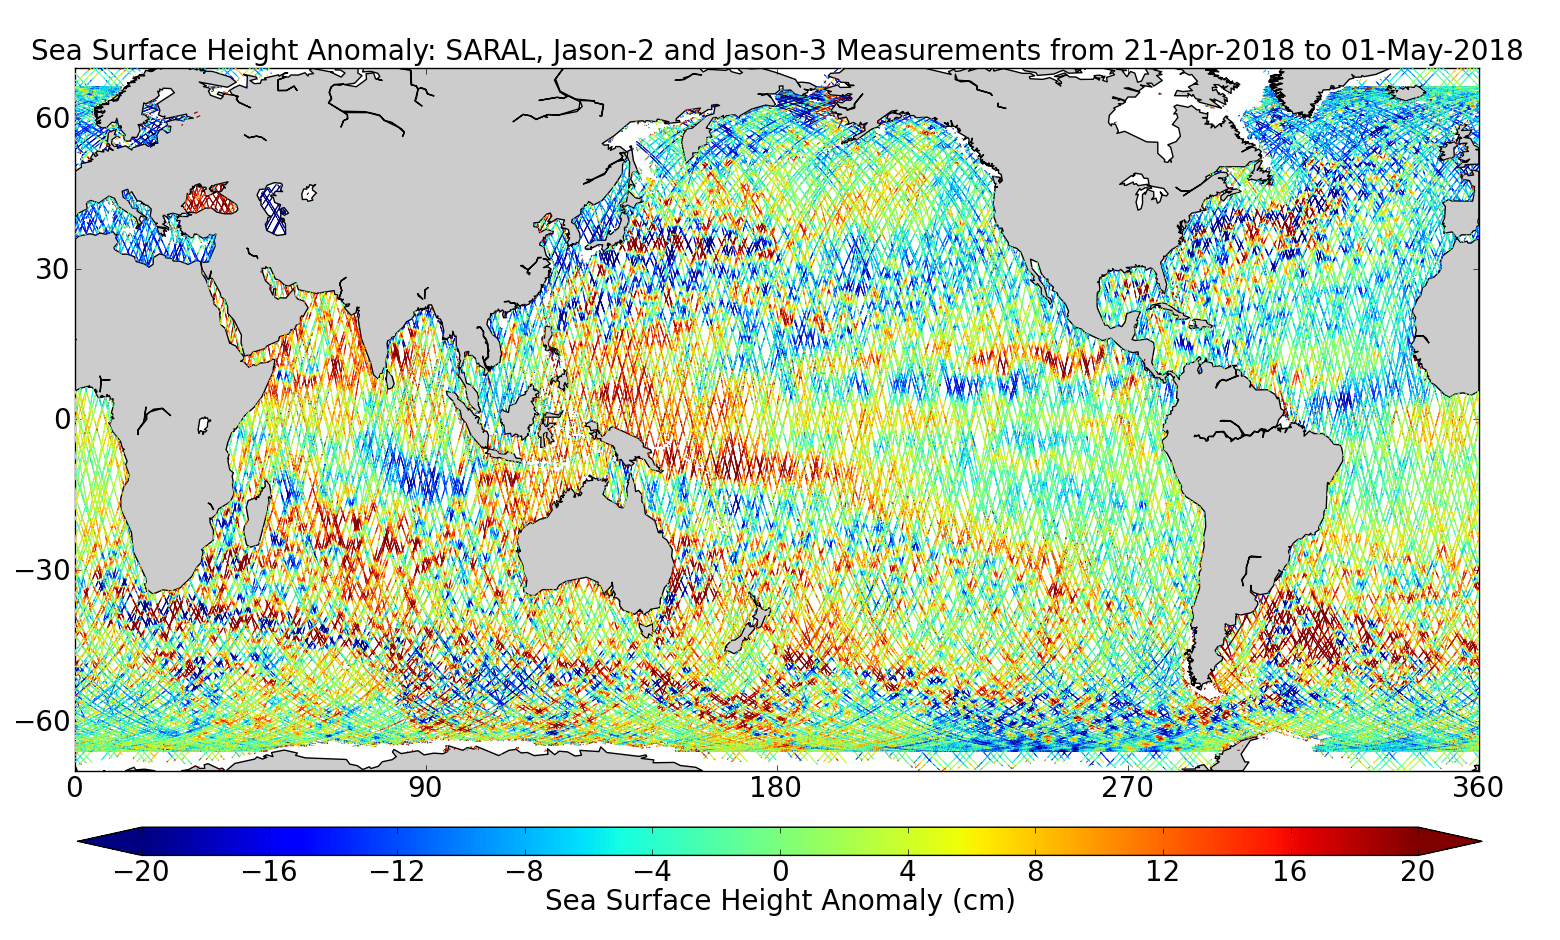 Sea Surface Height Anomaly: SARAL, Jason-2 and Jason-3 Measurements from 21-Apr-2018 to 01-May-2018